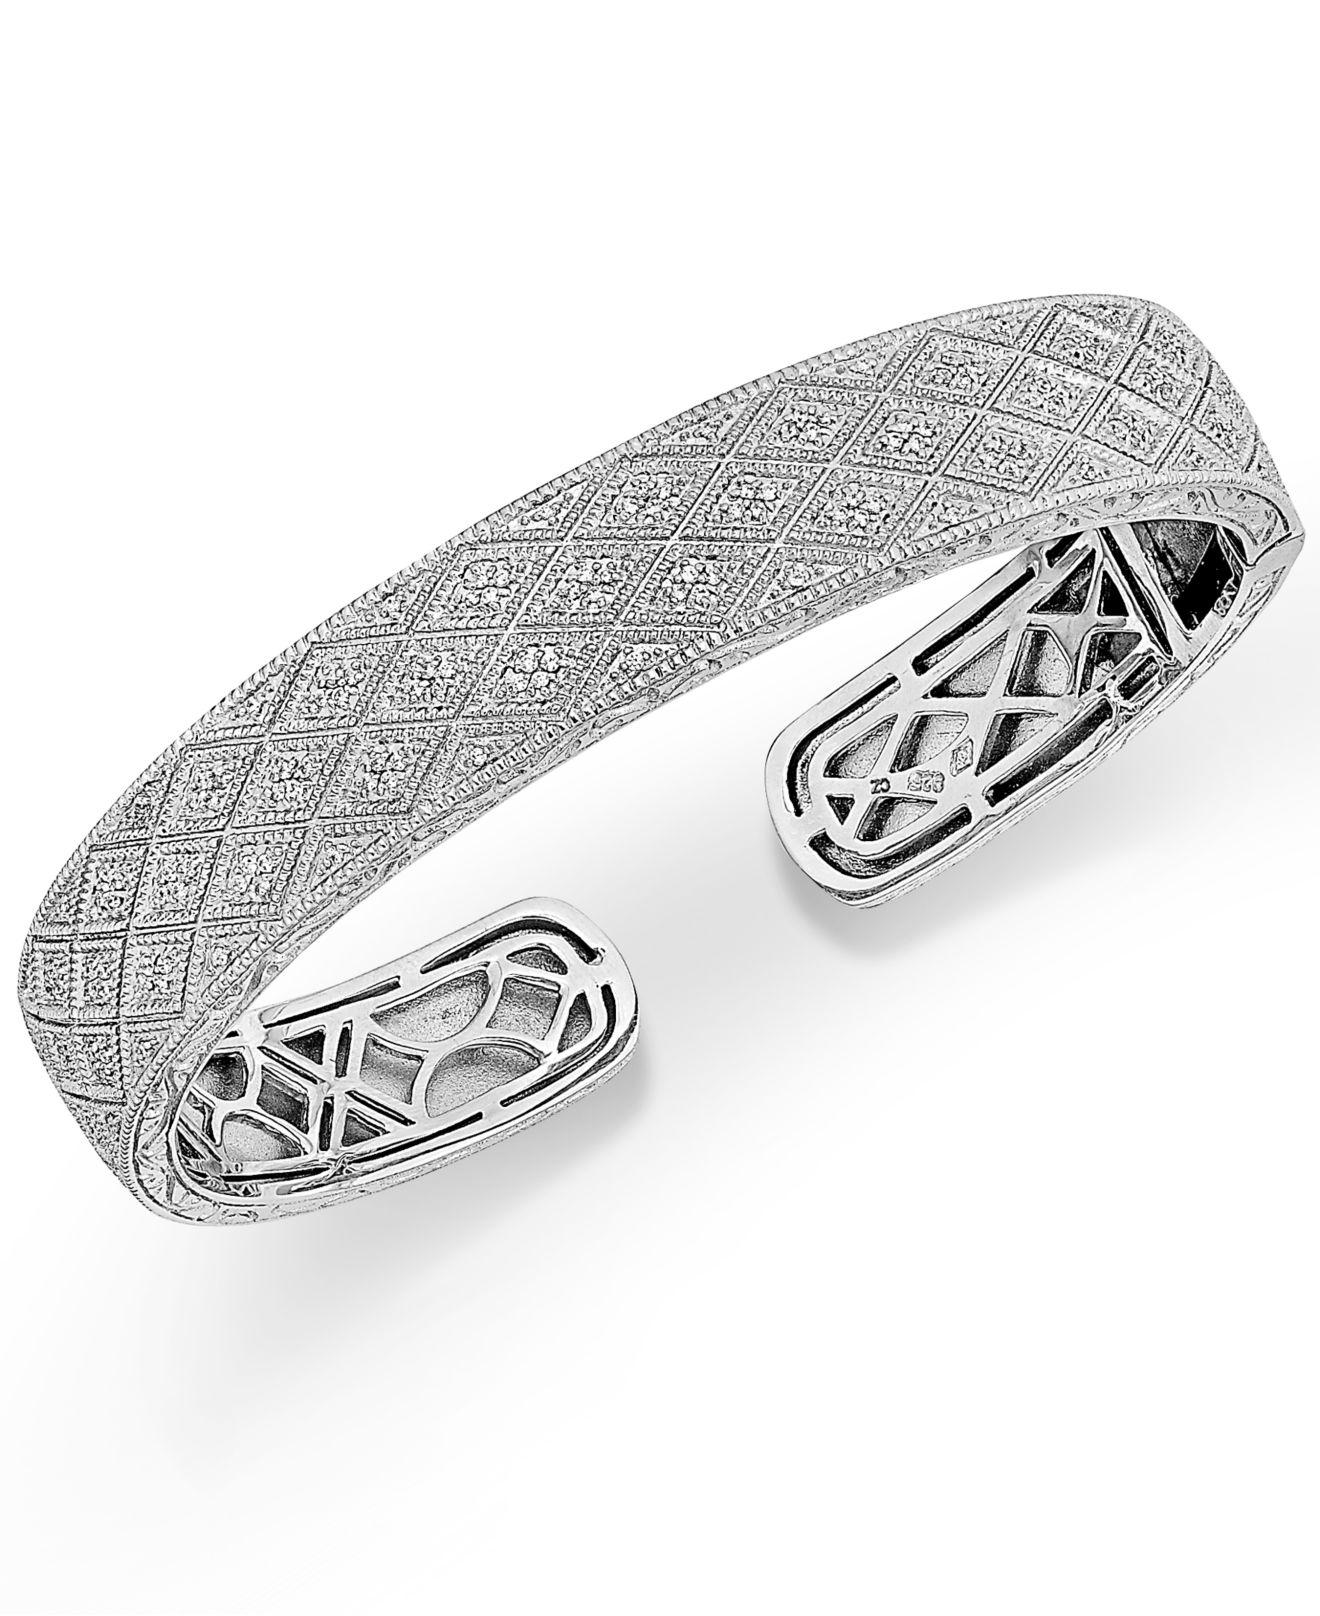 bracelets kaystore bangles kay sterling diamond mv silver zm bangle bracelet ct round tw en cut